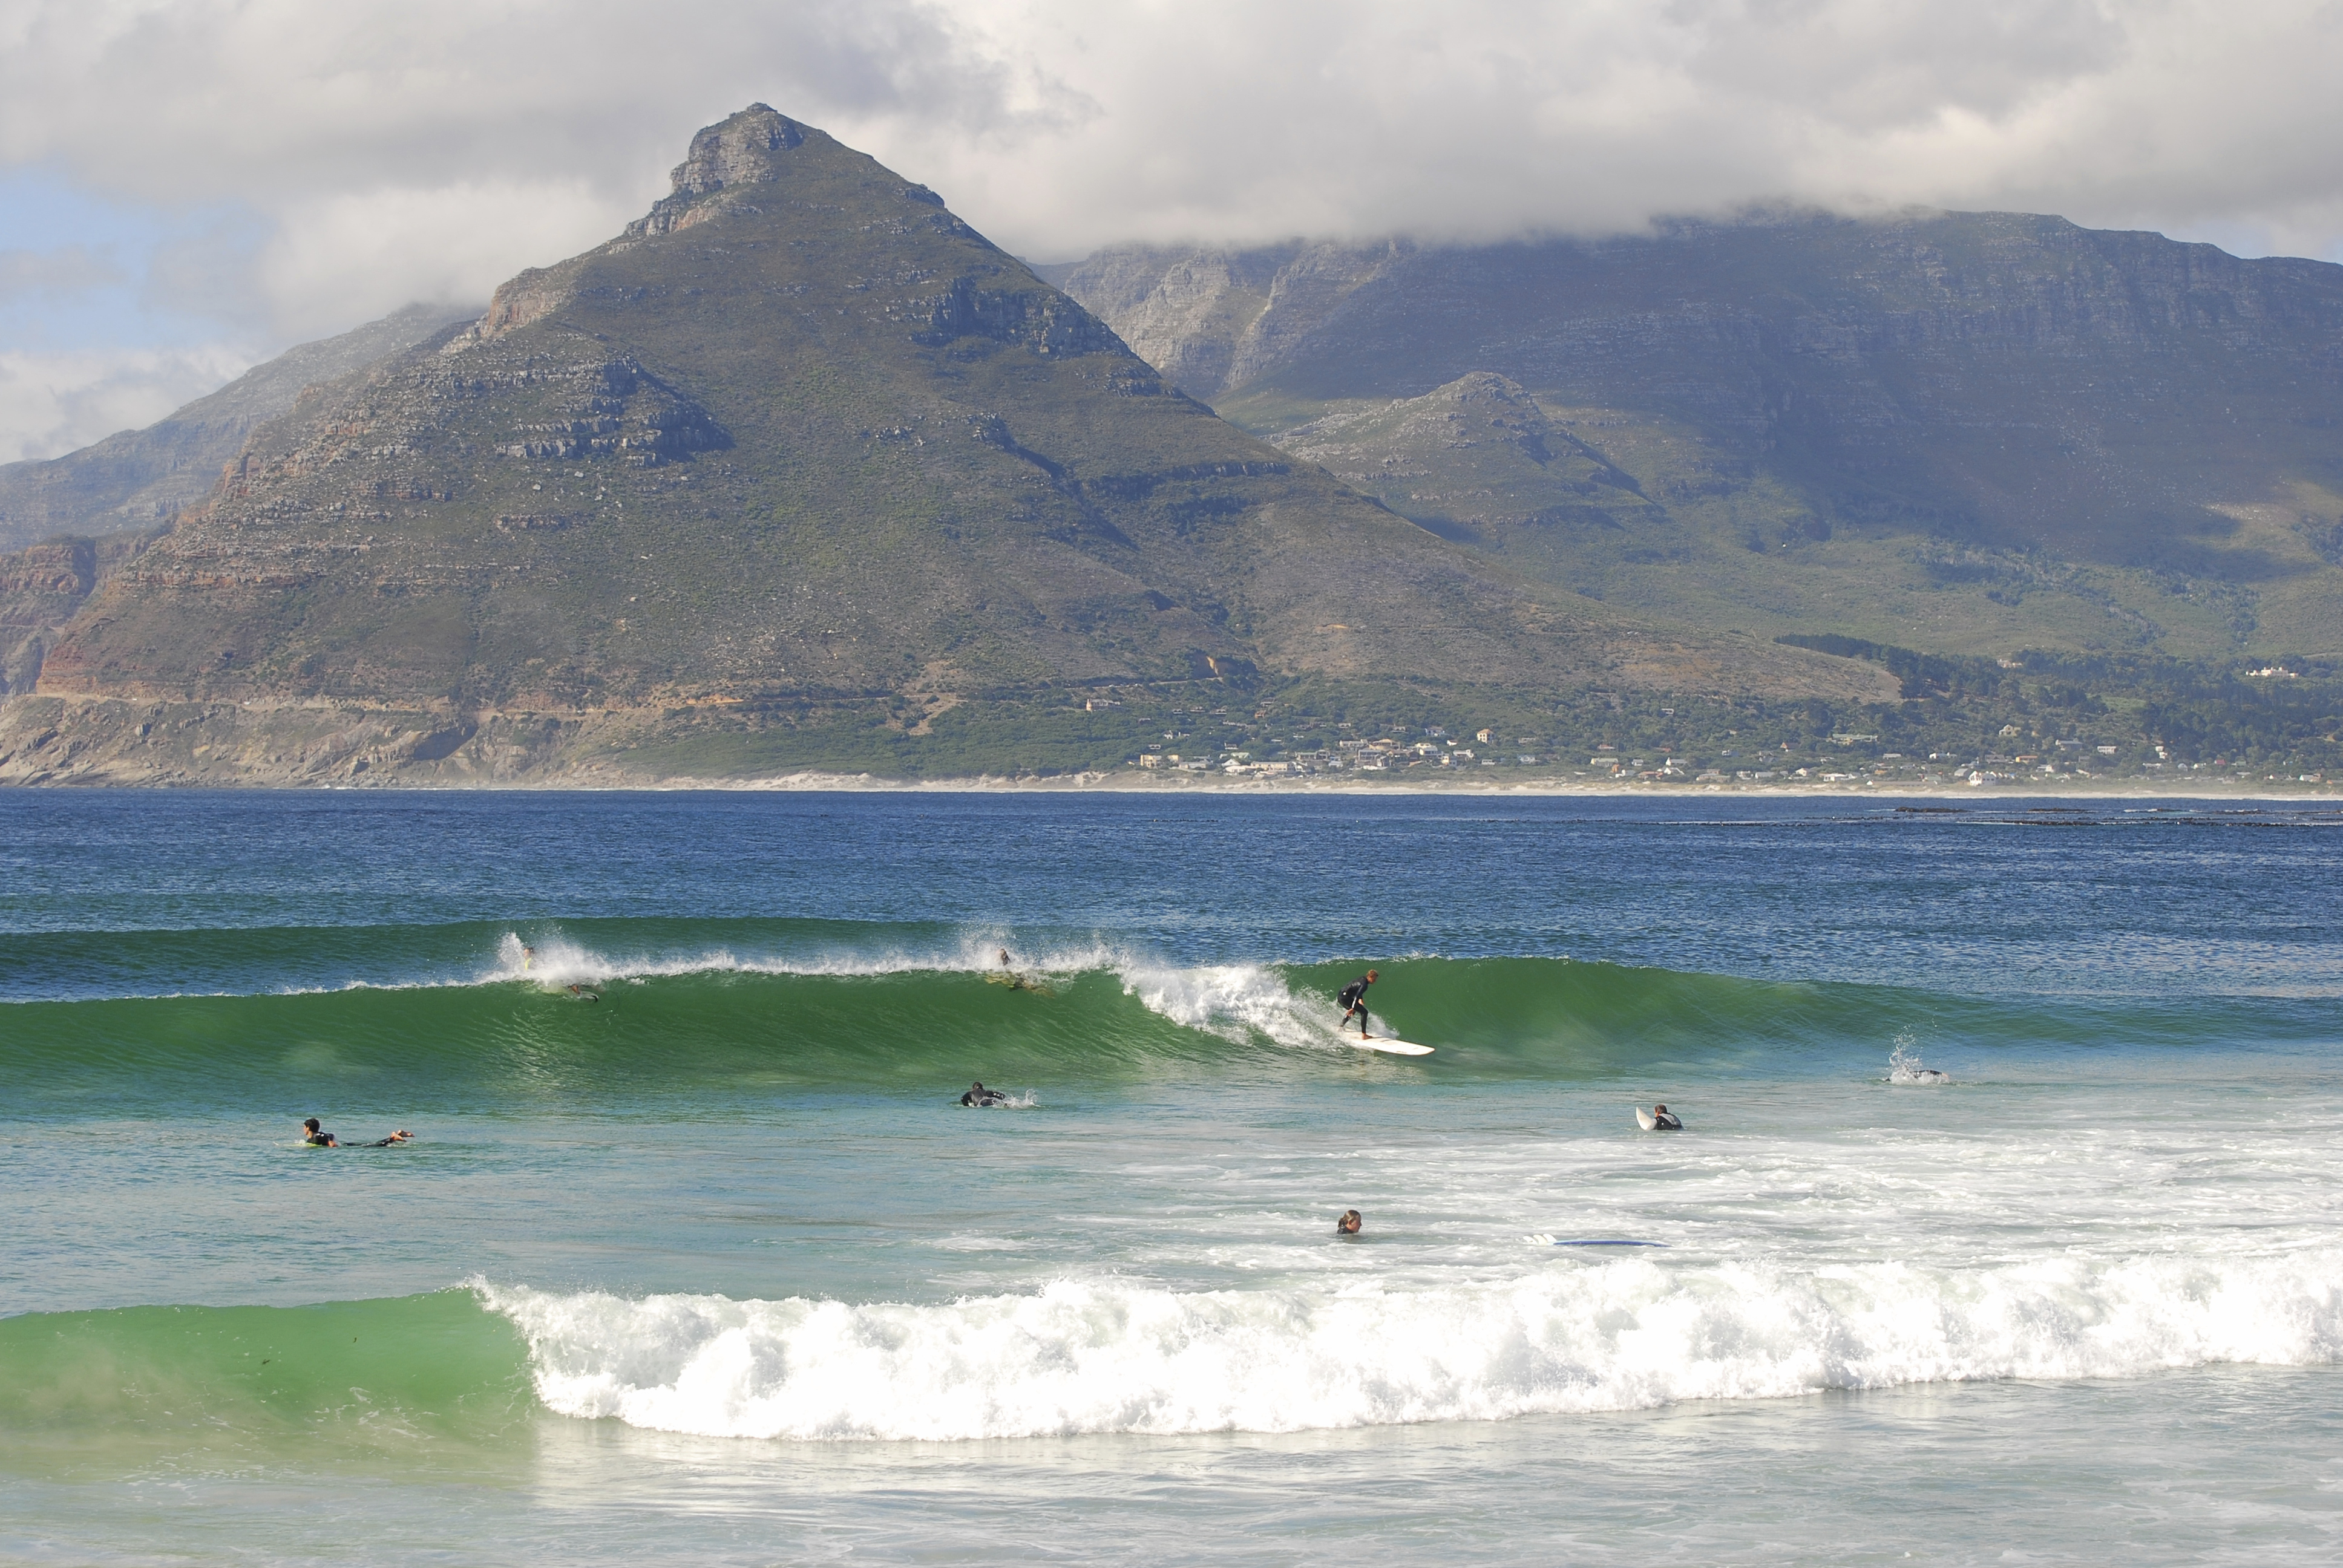 Surfing is big in South Africa